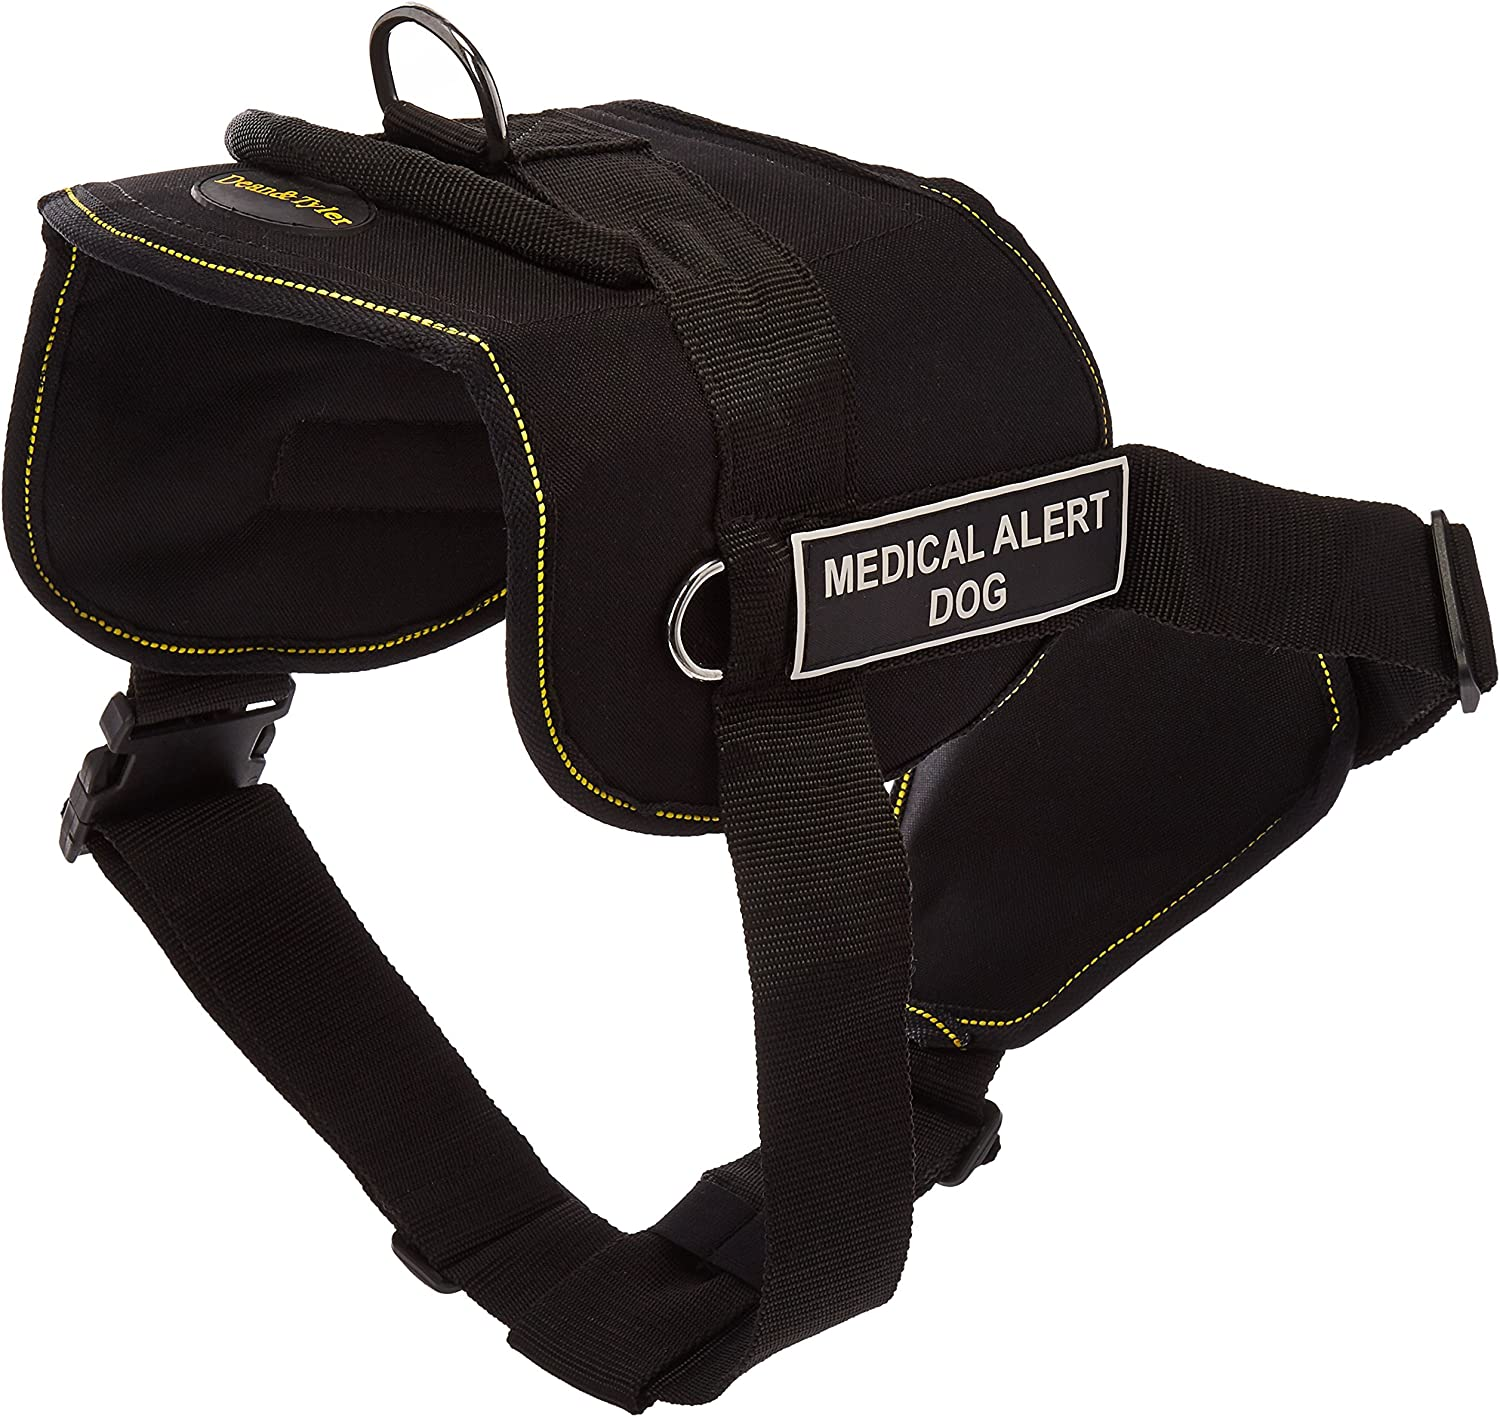 Dean & Tyler Black with Yellow Trim Fun Dog Harness with Padded Chest Piece, Medical Alert Dog, XLarge, Fits Girth Size 34Inch to 47Inch